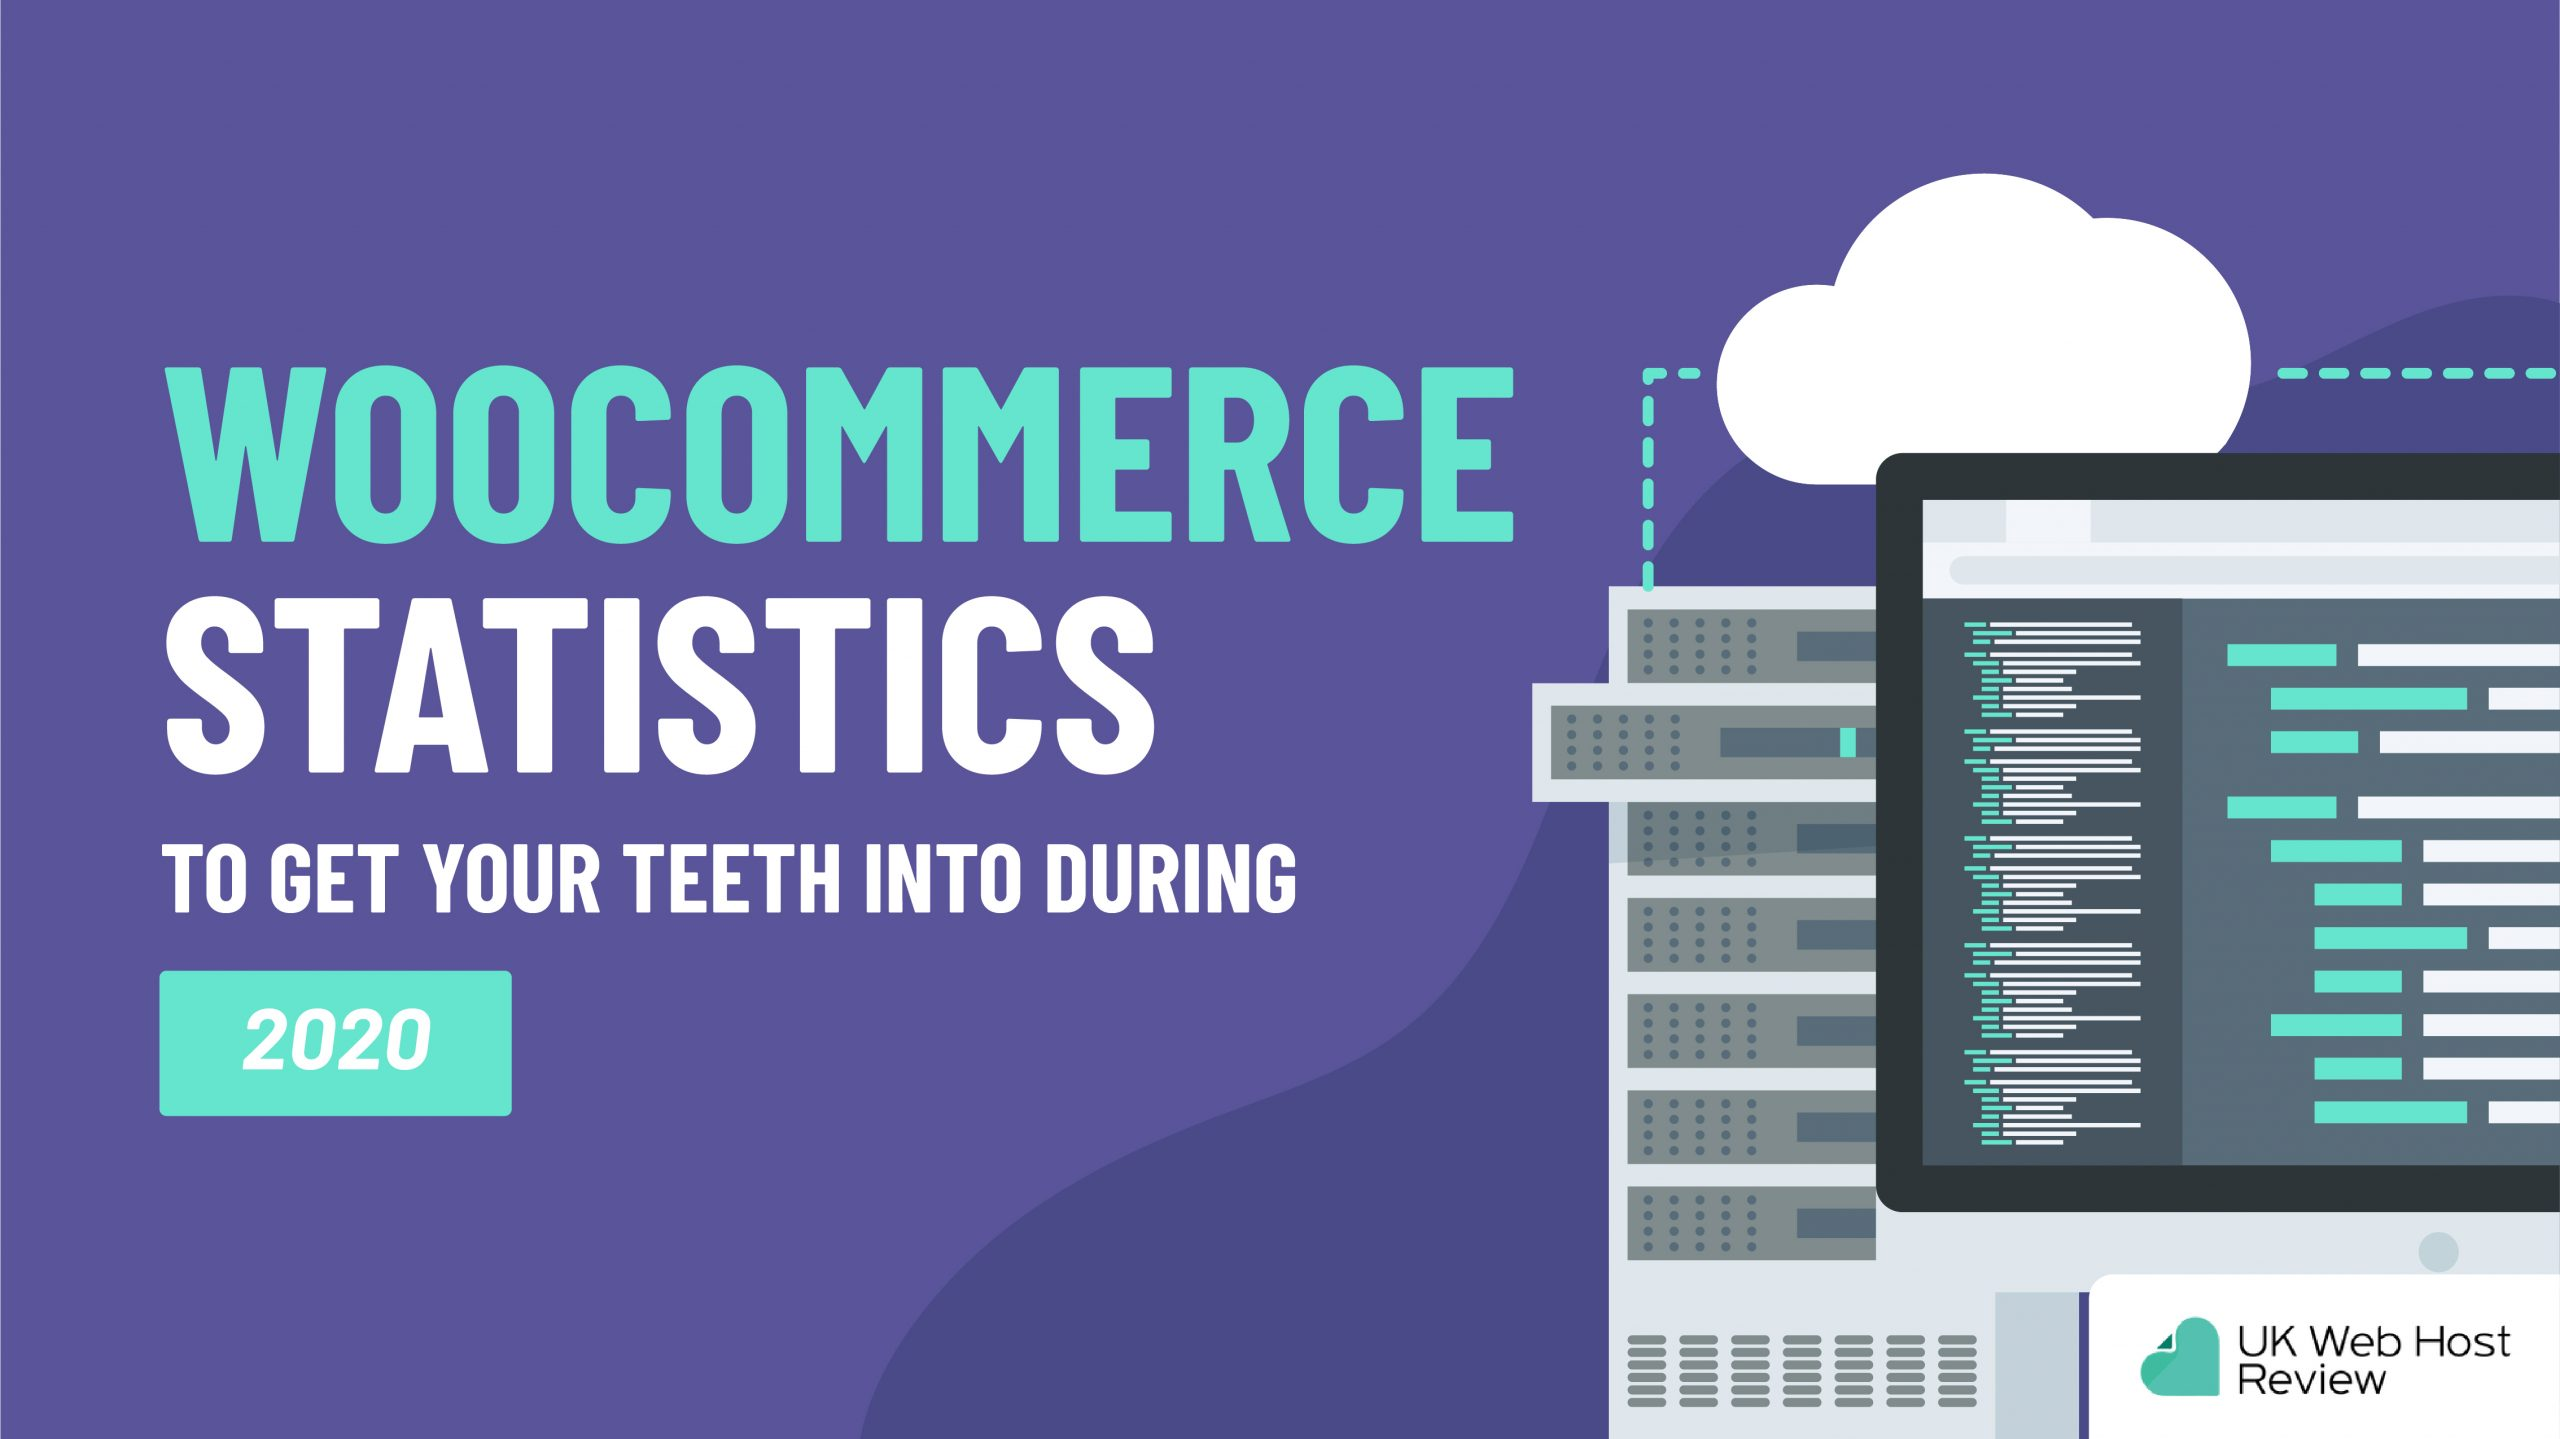 39 WooCommerce Statistics to Get Your Teeth into During 2021